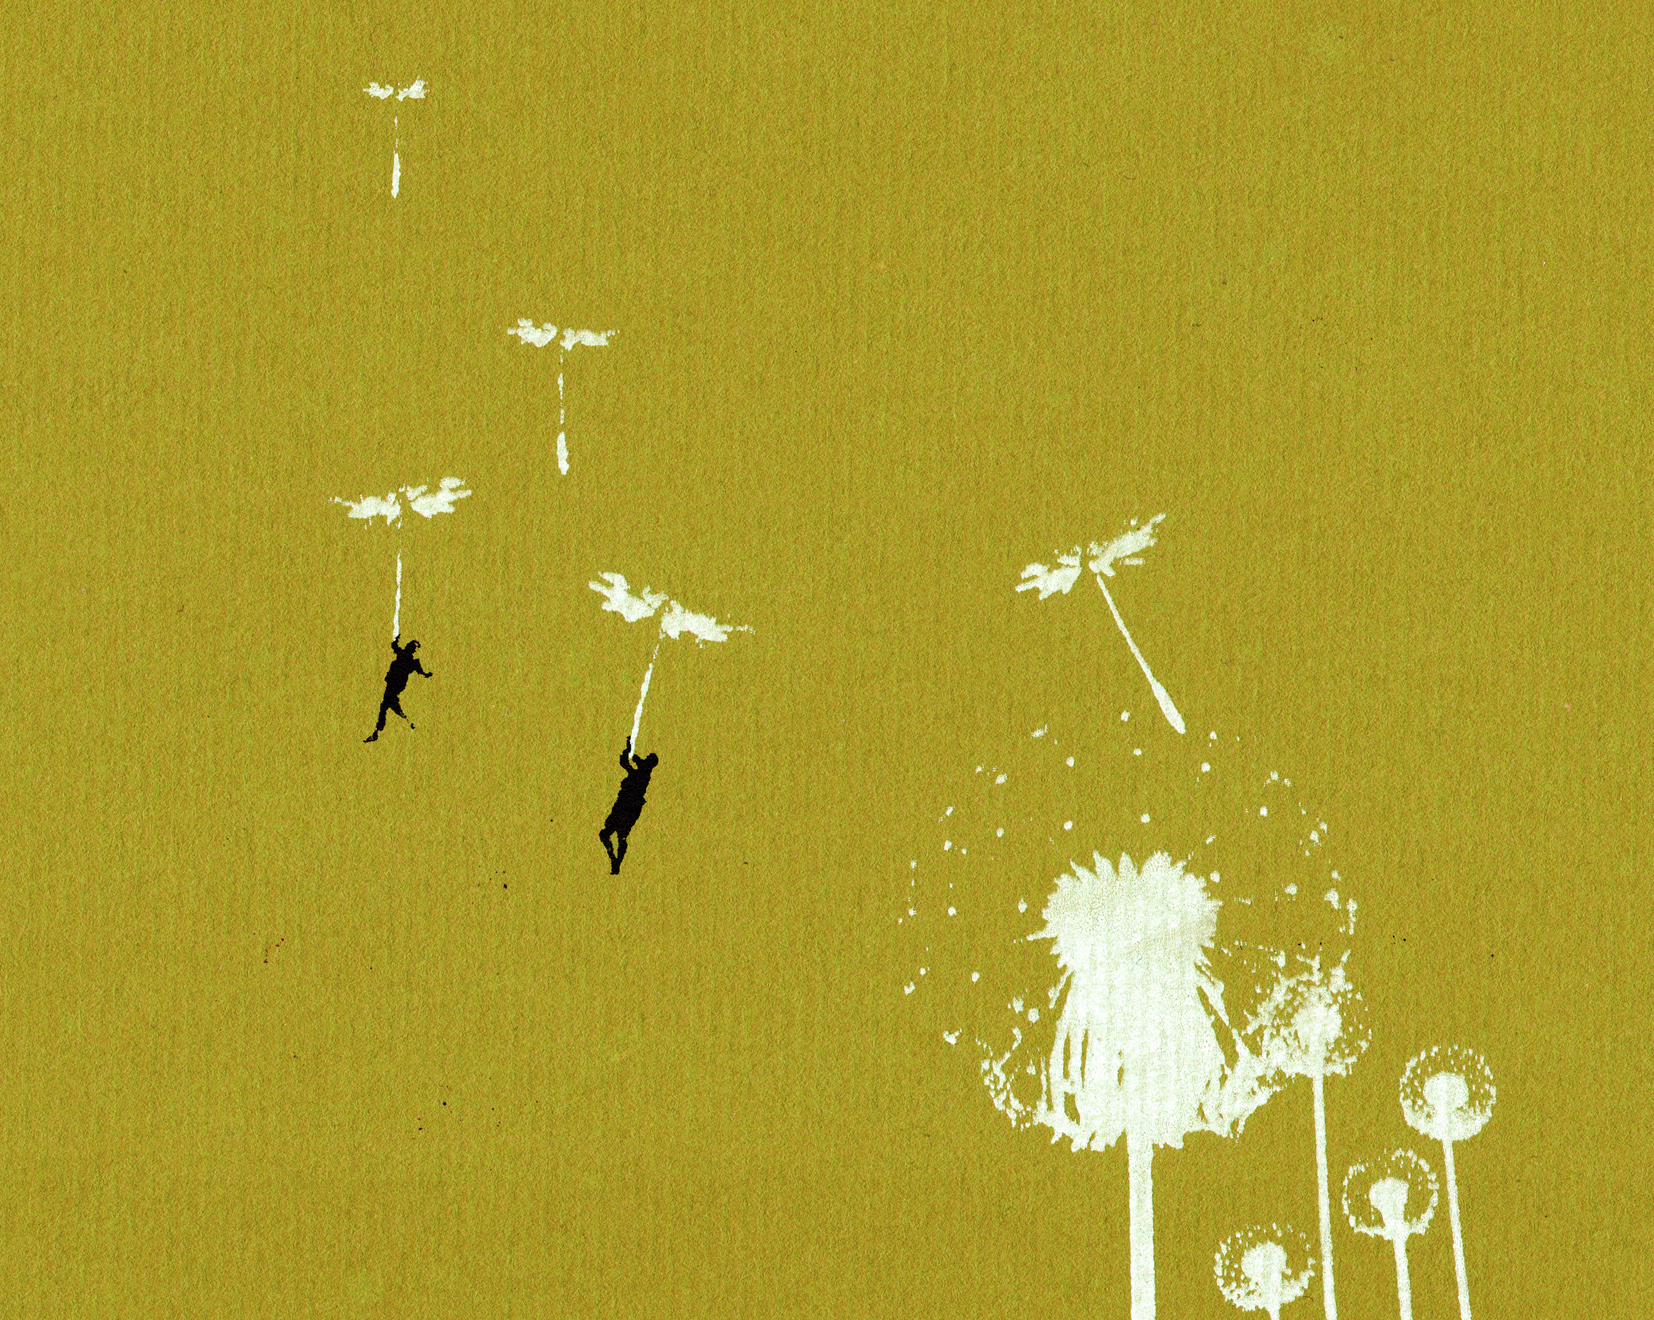 Dandelion Flight